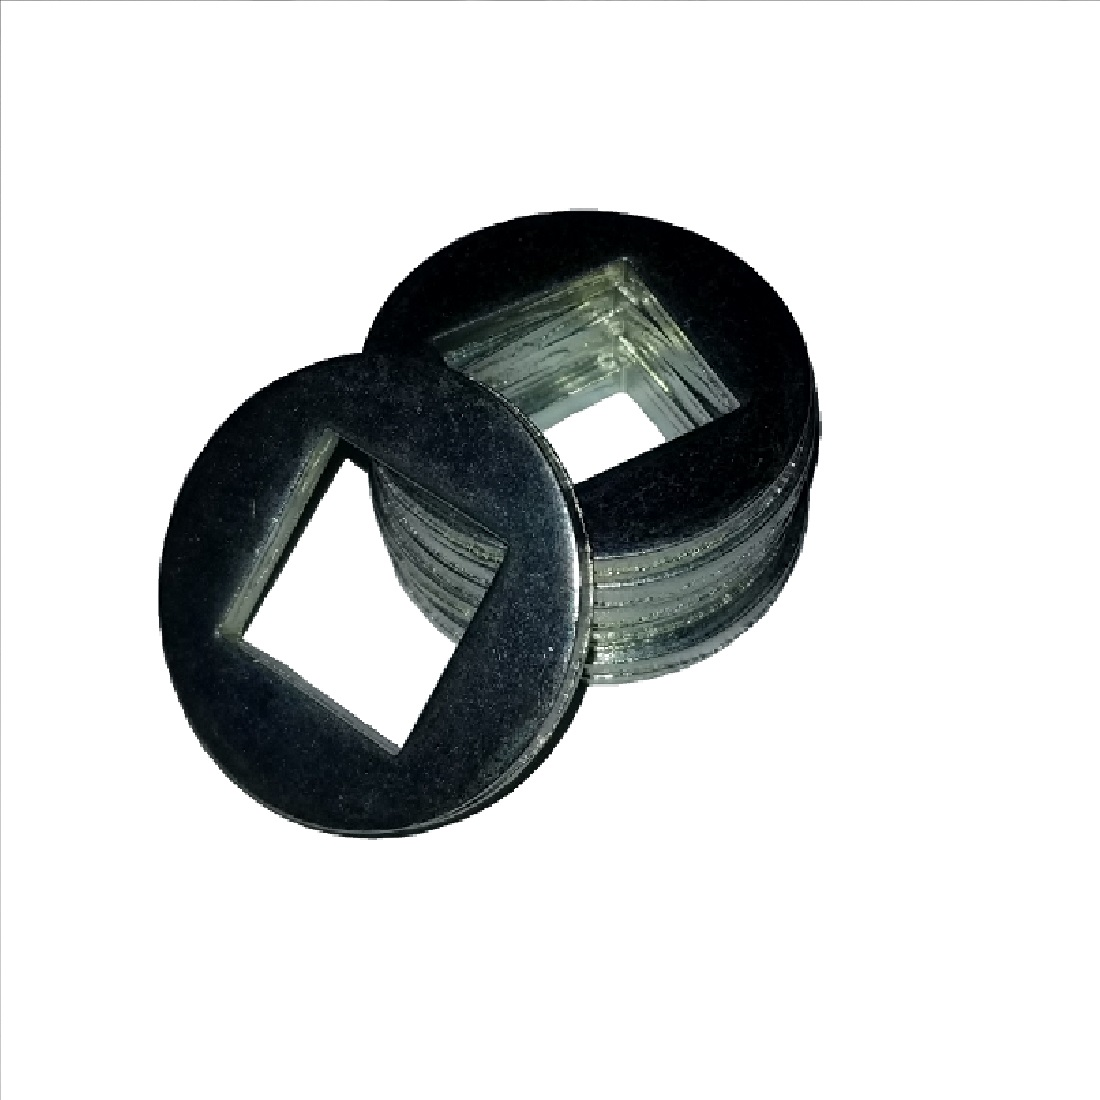 Square ID Washer - 0.560 ID, 1.180 OD, 0.039 Thick, Low Carbon Steel - Soft, Zinc & Clear